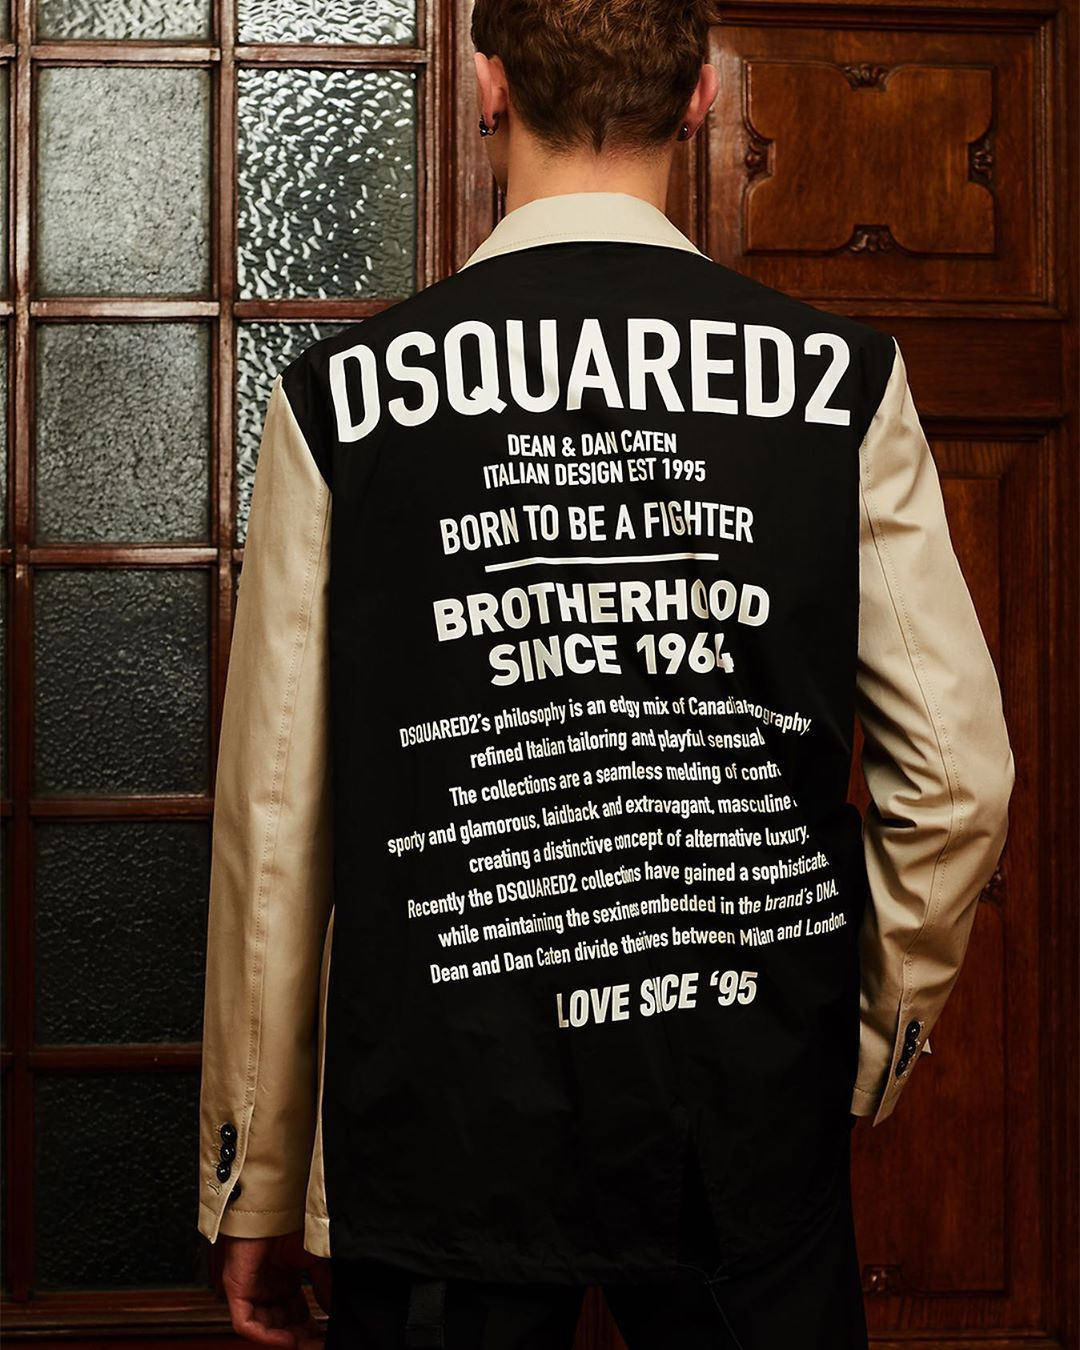 dsquared2 fashion show 2020: un espectáculo de aniversario 41